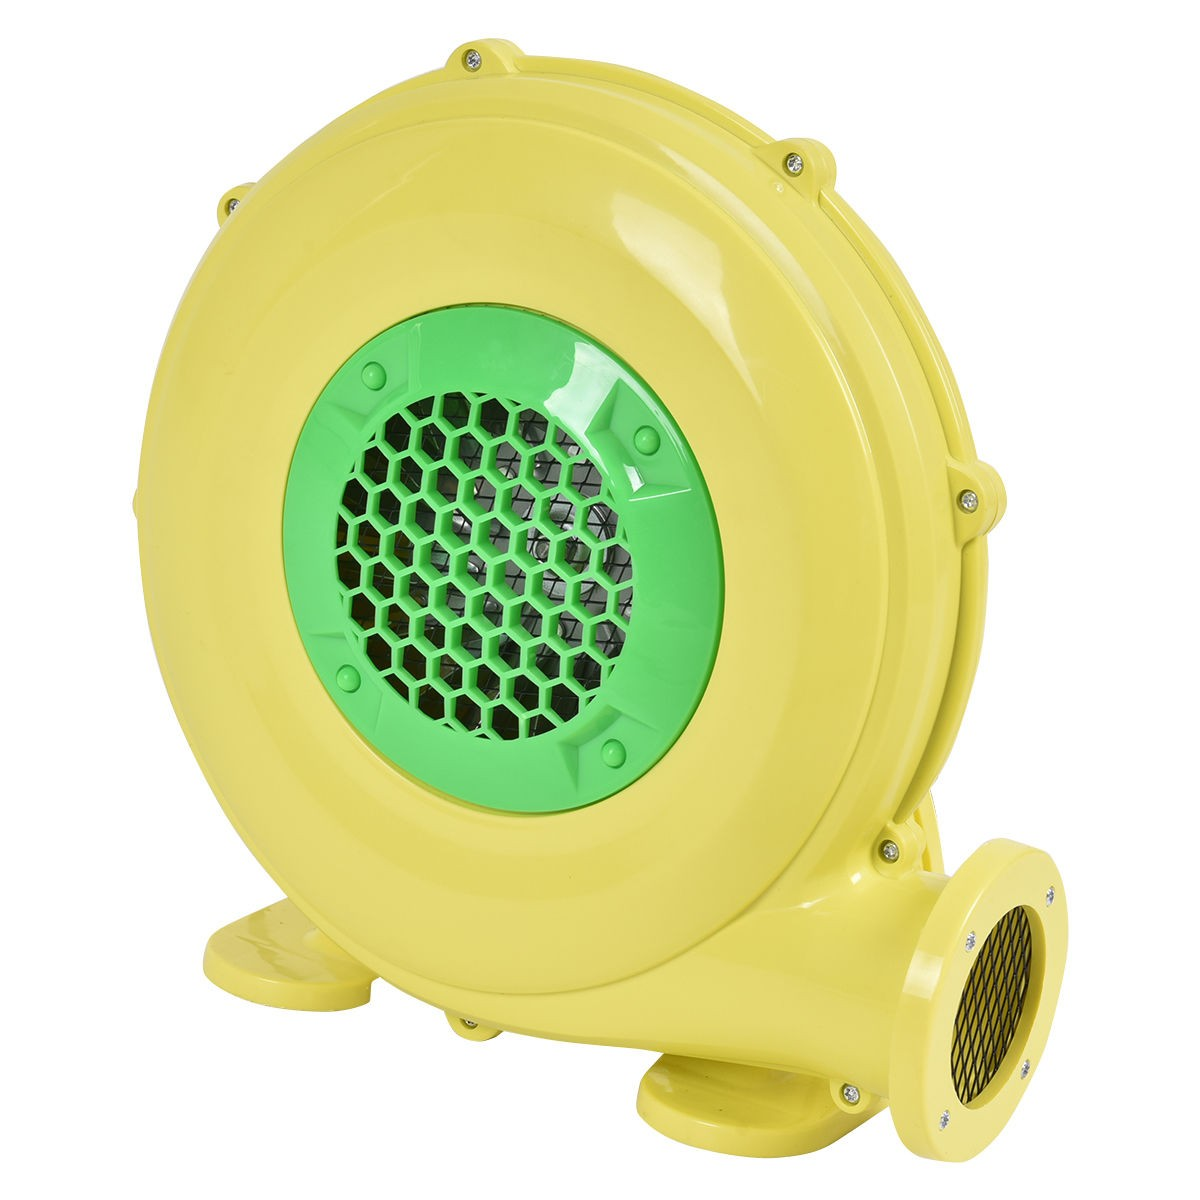 Bounce House Blower : Air blower pump fan for inflatable bounce house bouncy